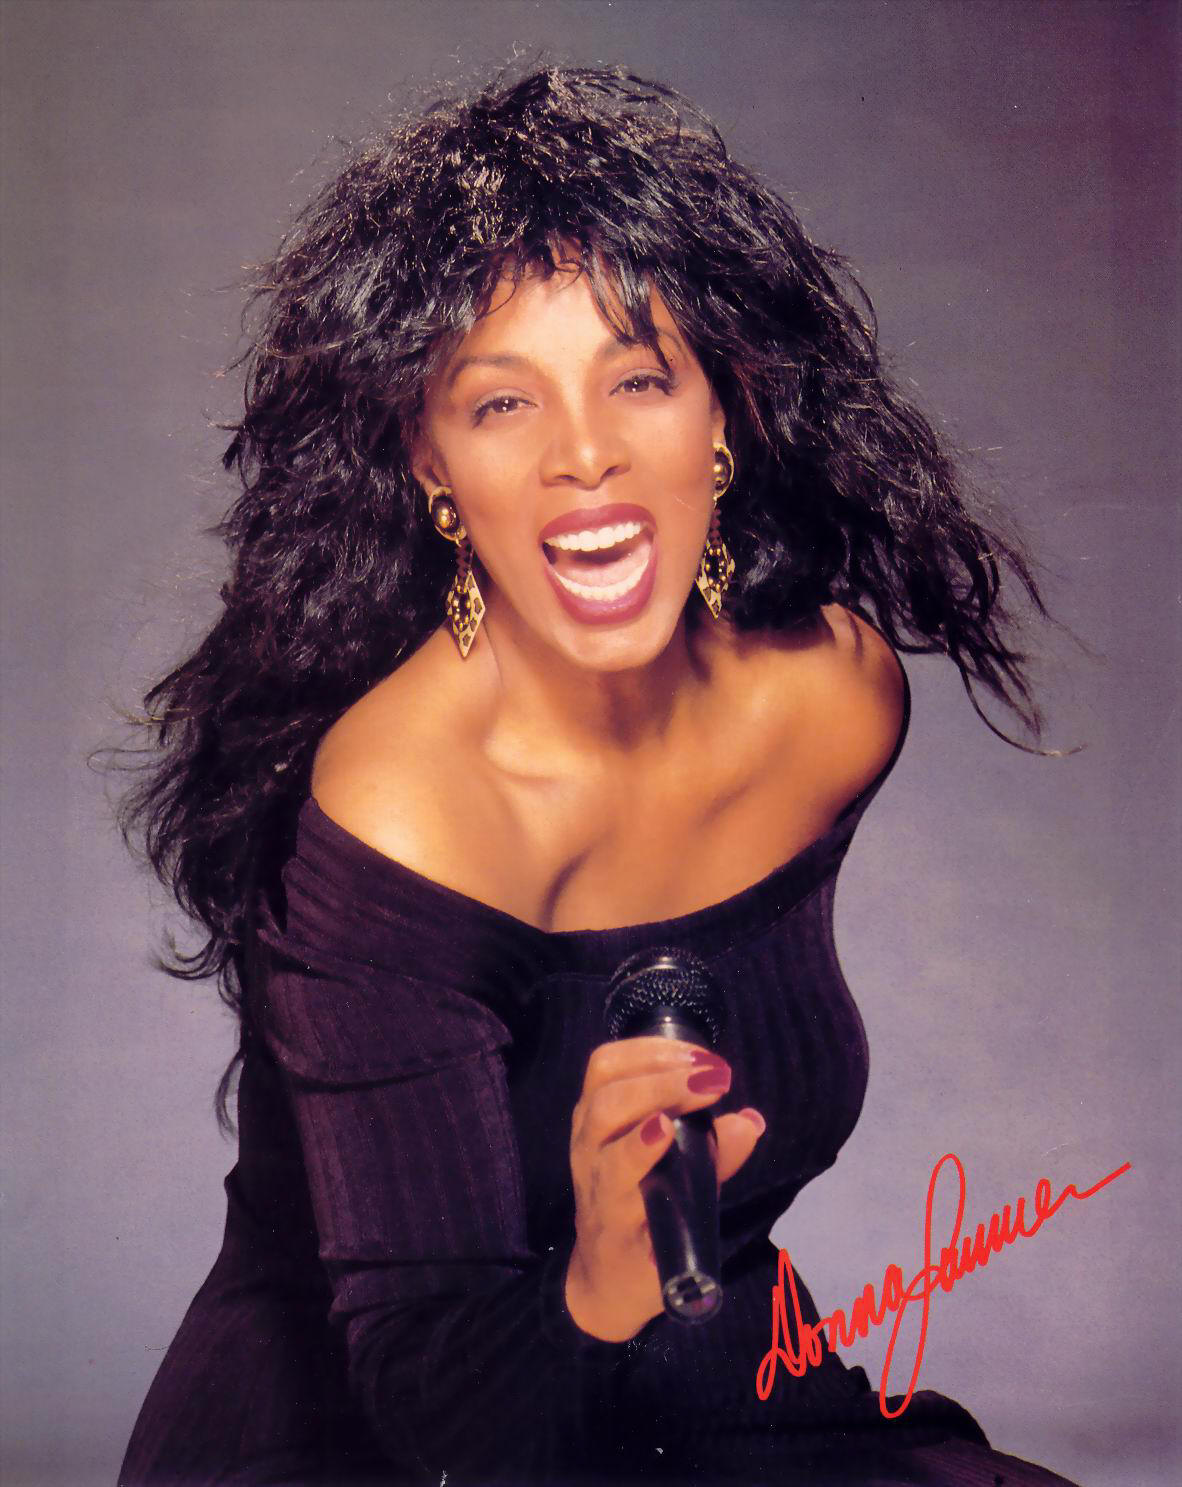 donna summer youtube